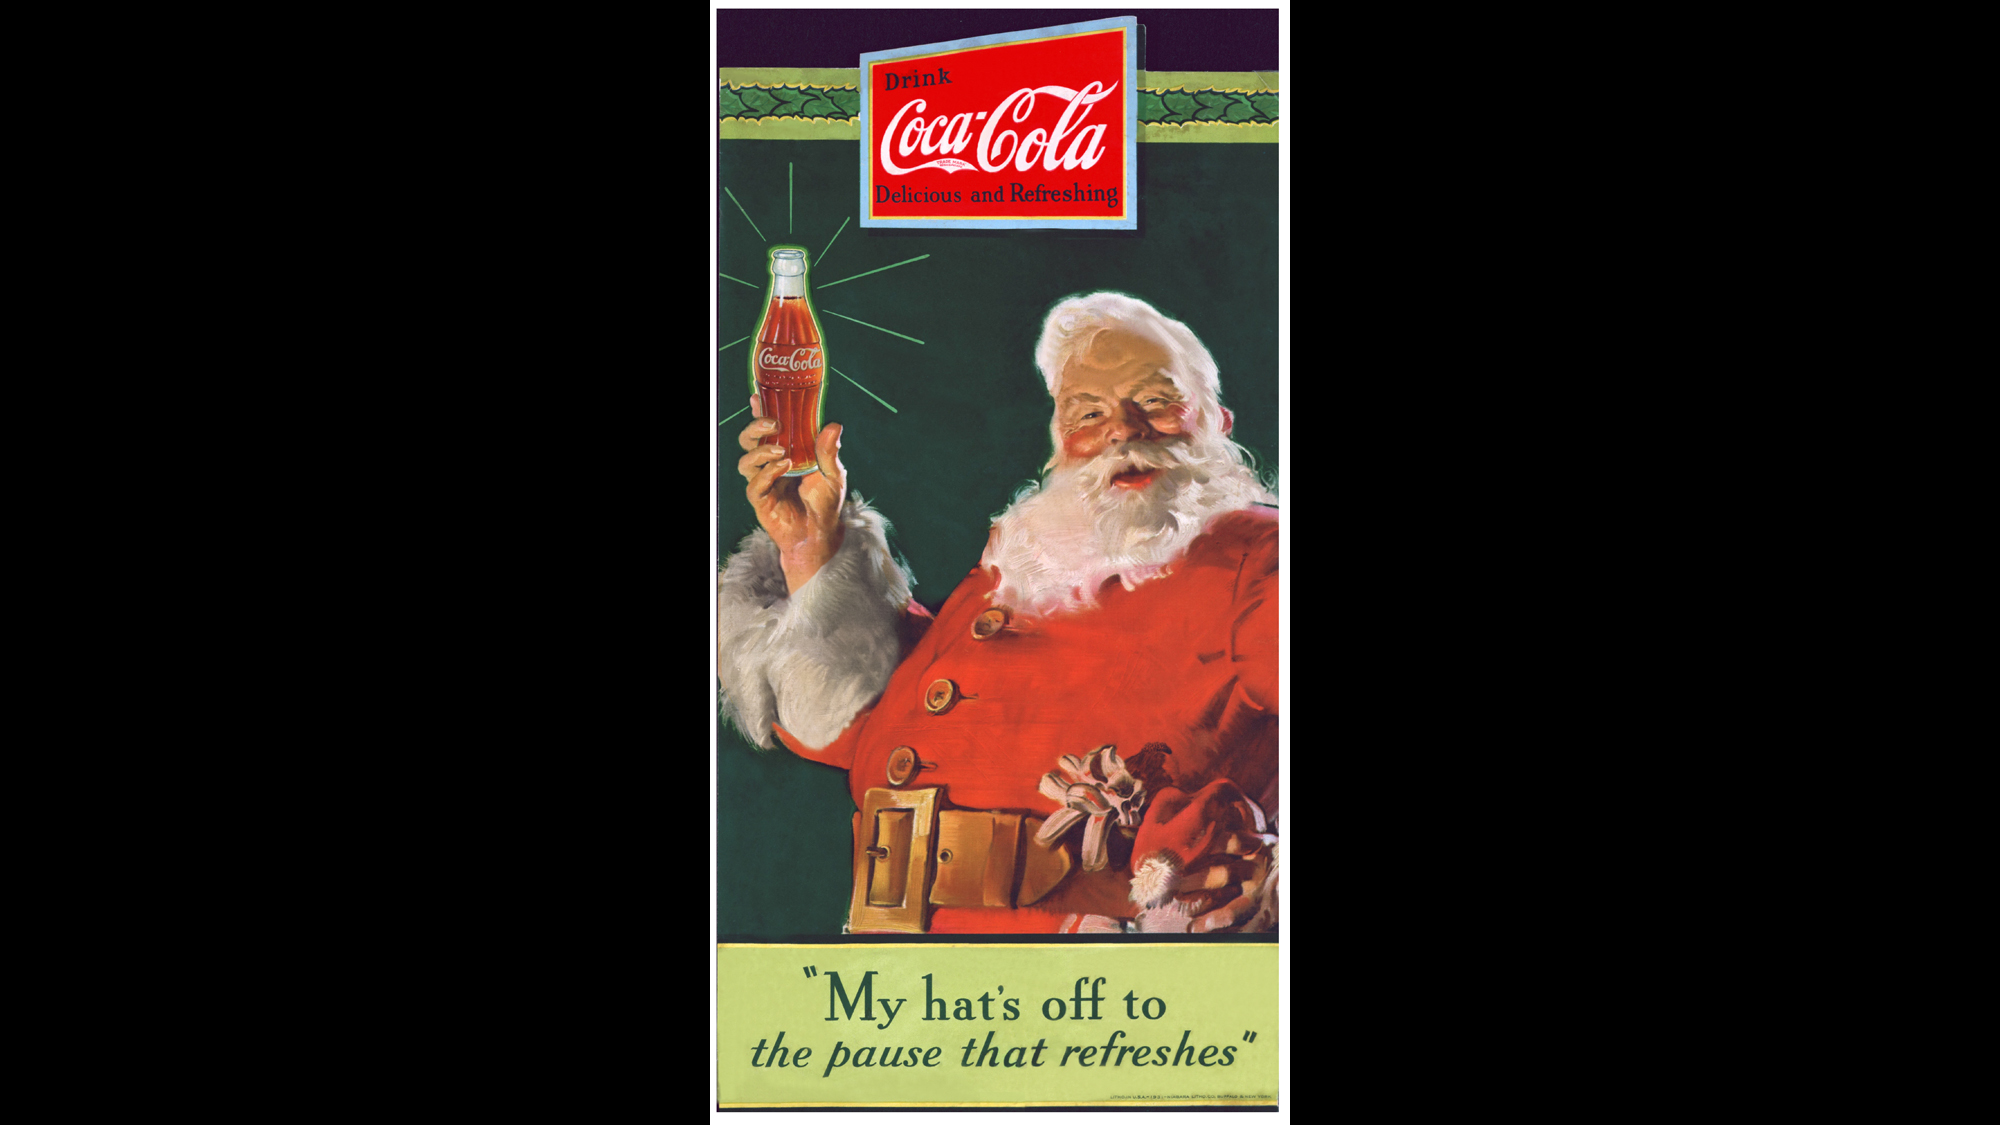 130 years of Coca-Cola ads